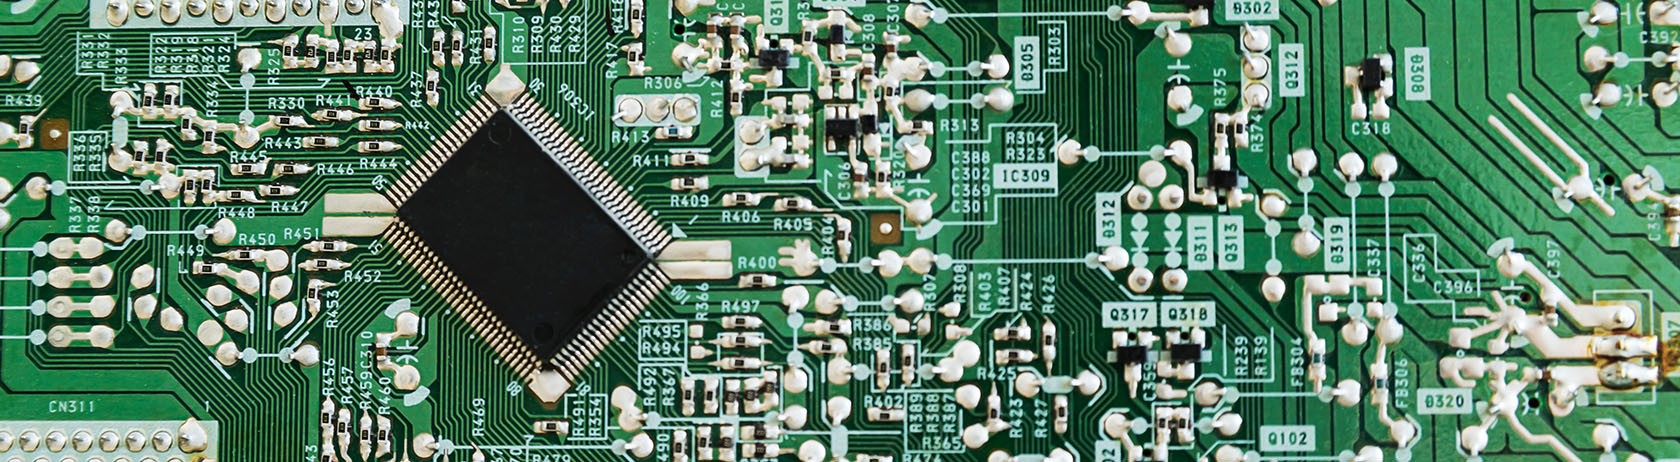 How to prevent your PCB from overheating | Knowledge Centre